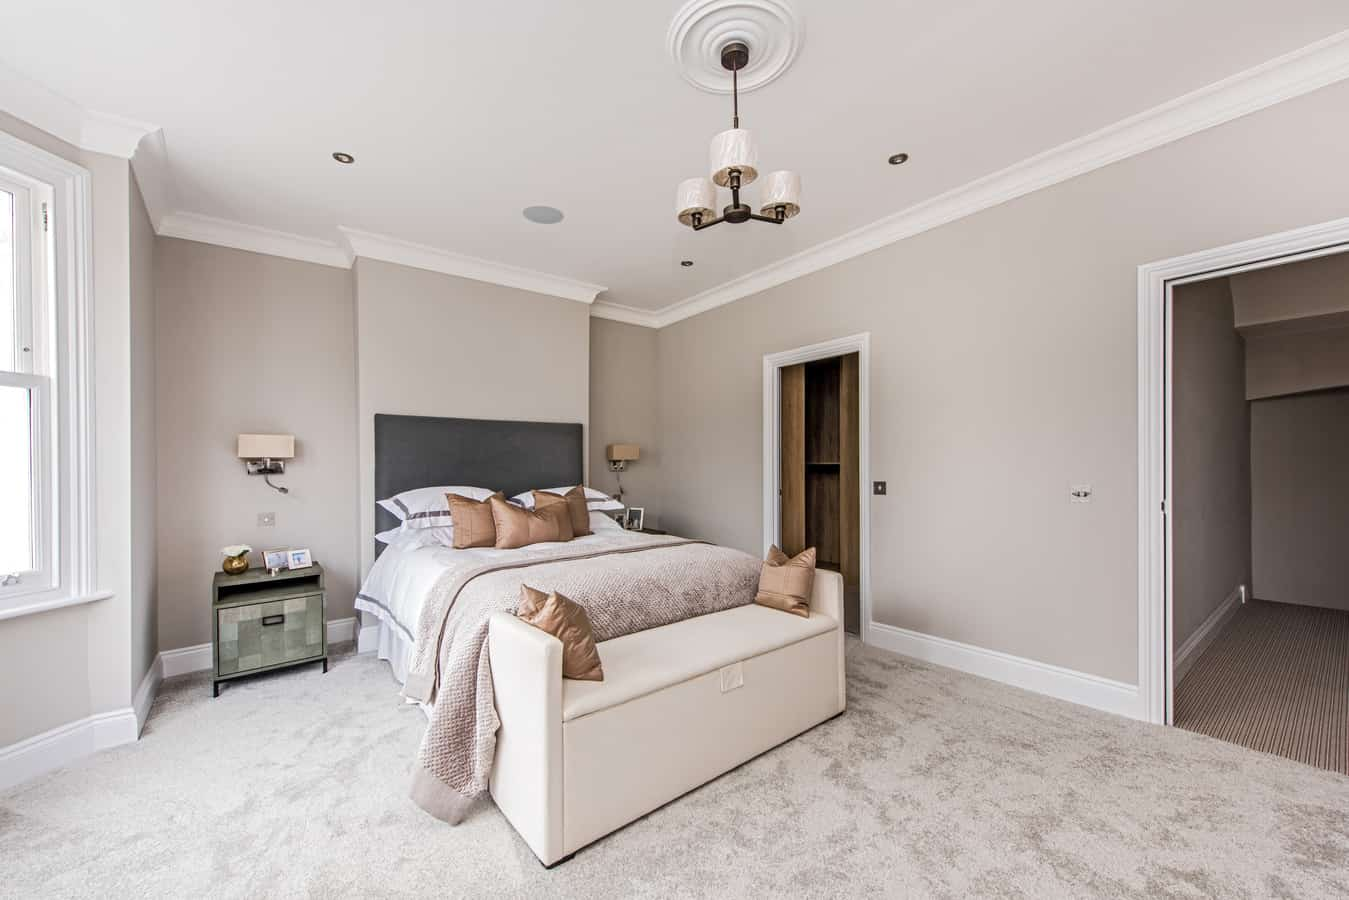 Finlay-Street-home-staged-by-cullum-design-london-uk-56-9